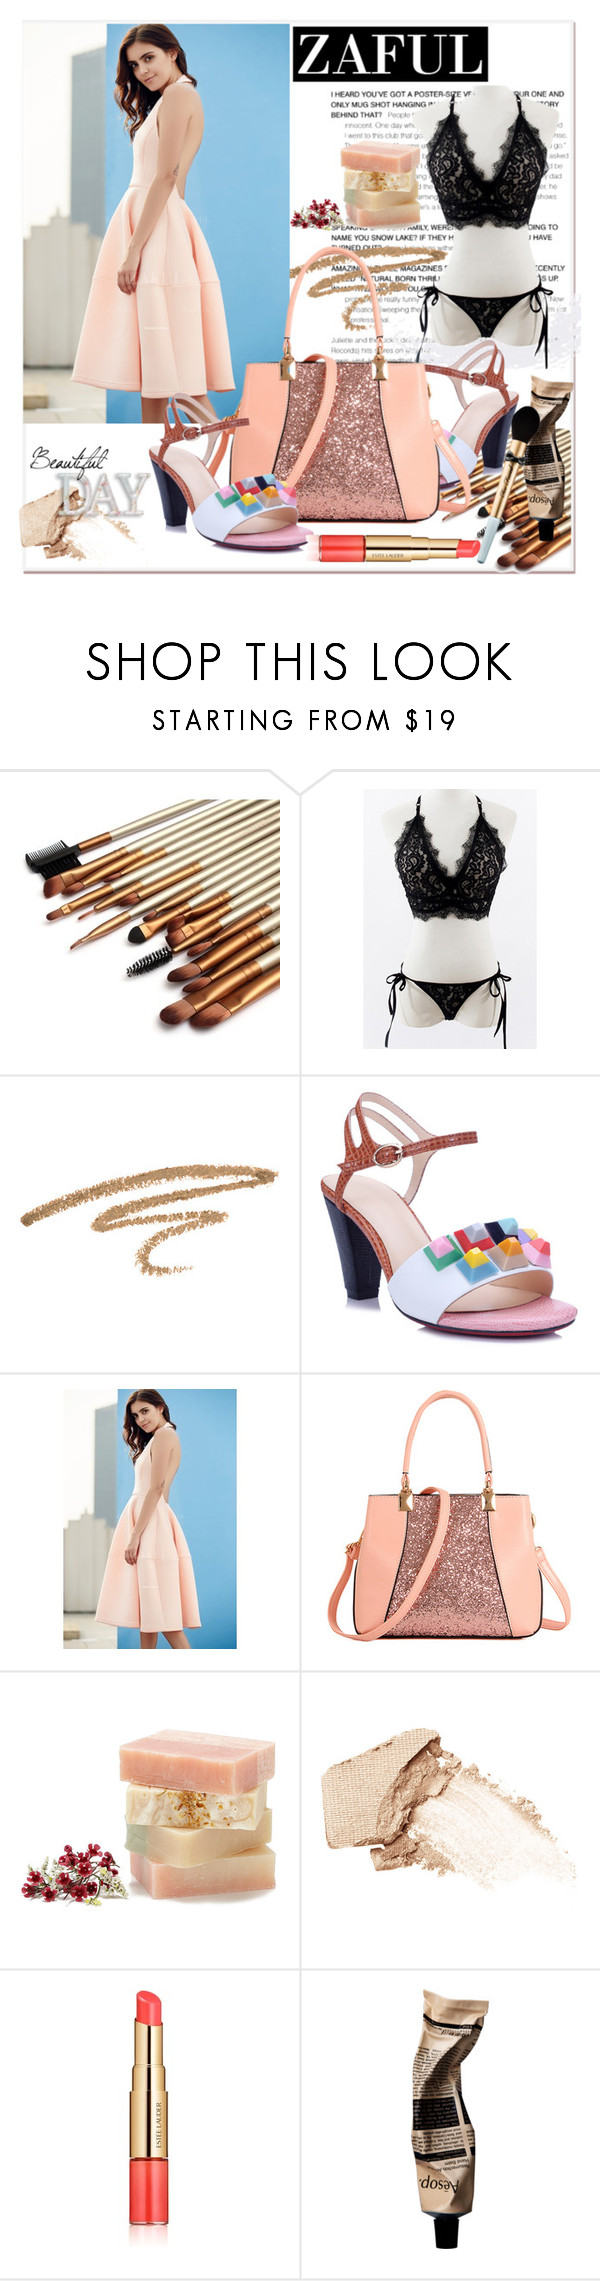 """""""ZAFUL"""" by newoutfit ❤ liked on Polyvore featuring NARS Cosmetics, Estée Lauder, Aesop, Too Faced Cosmetics and zaful"""